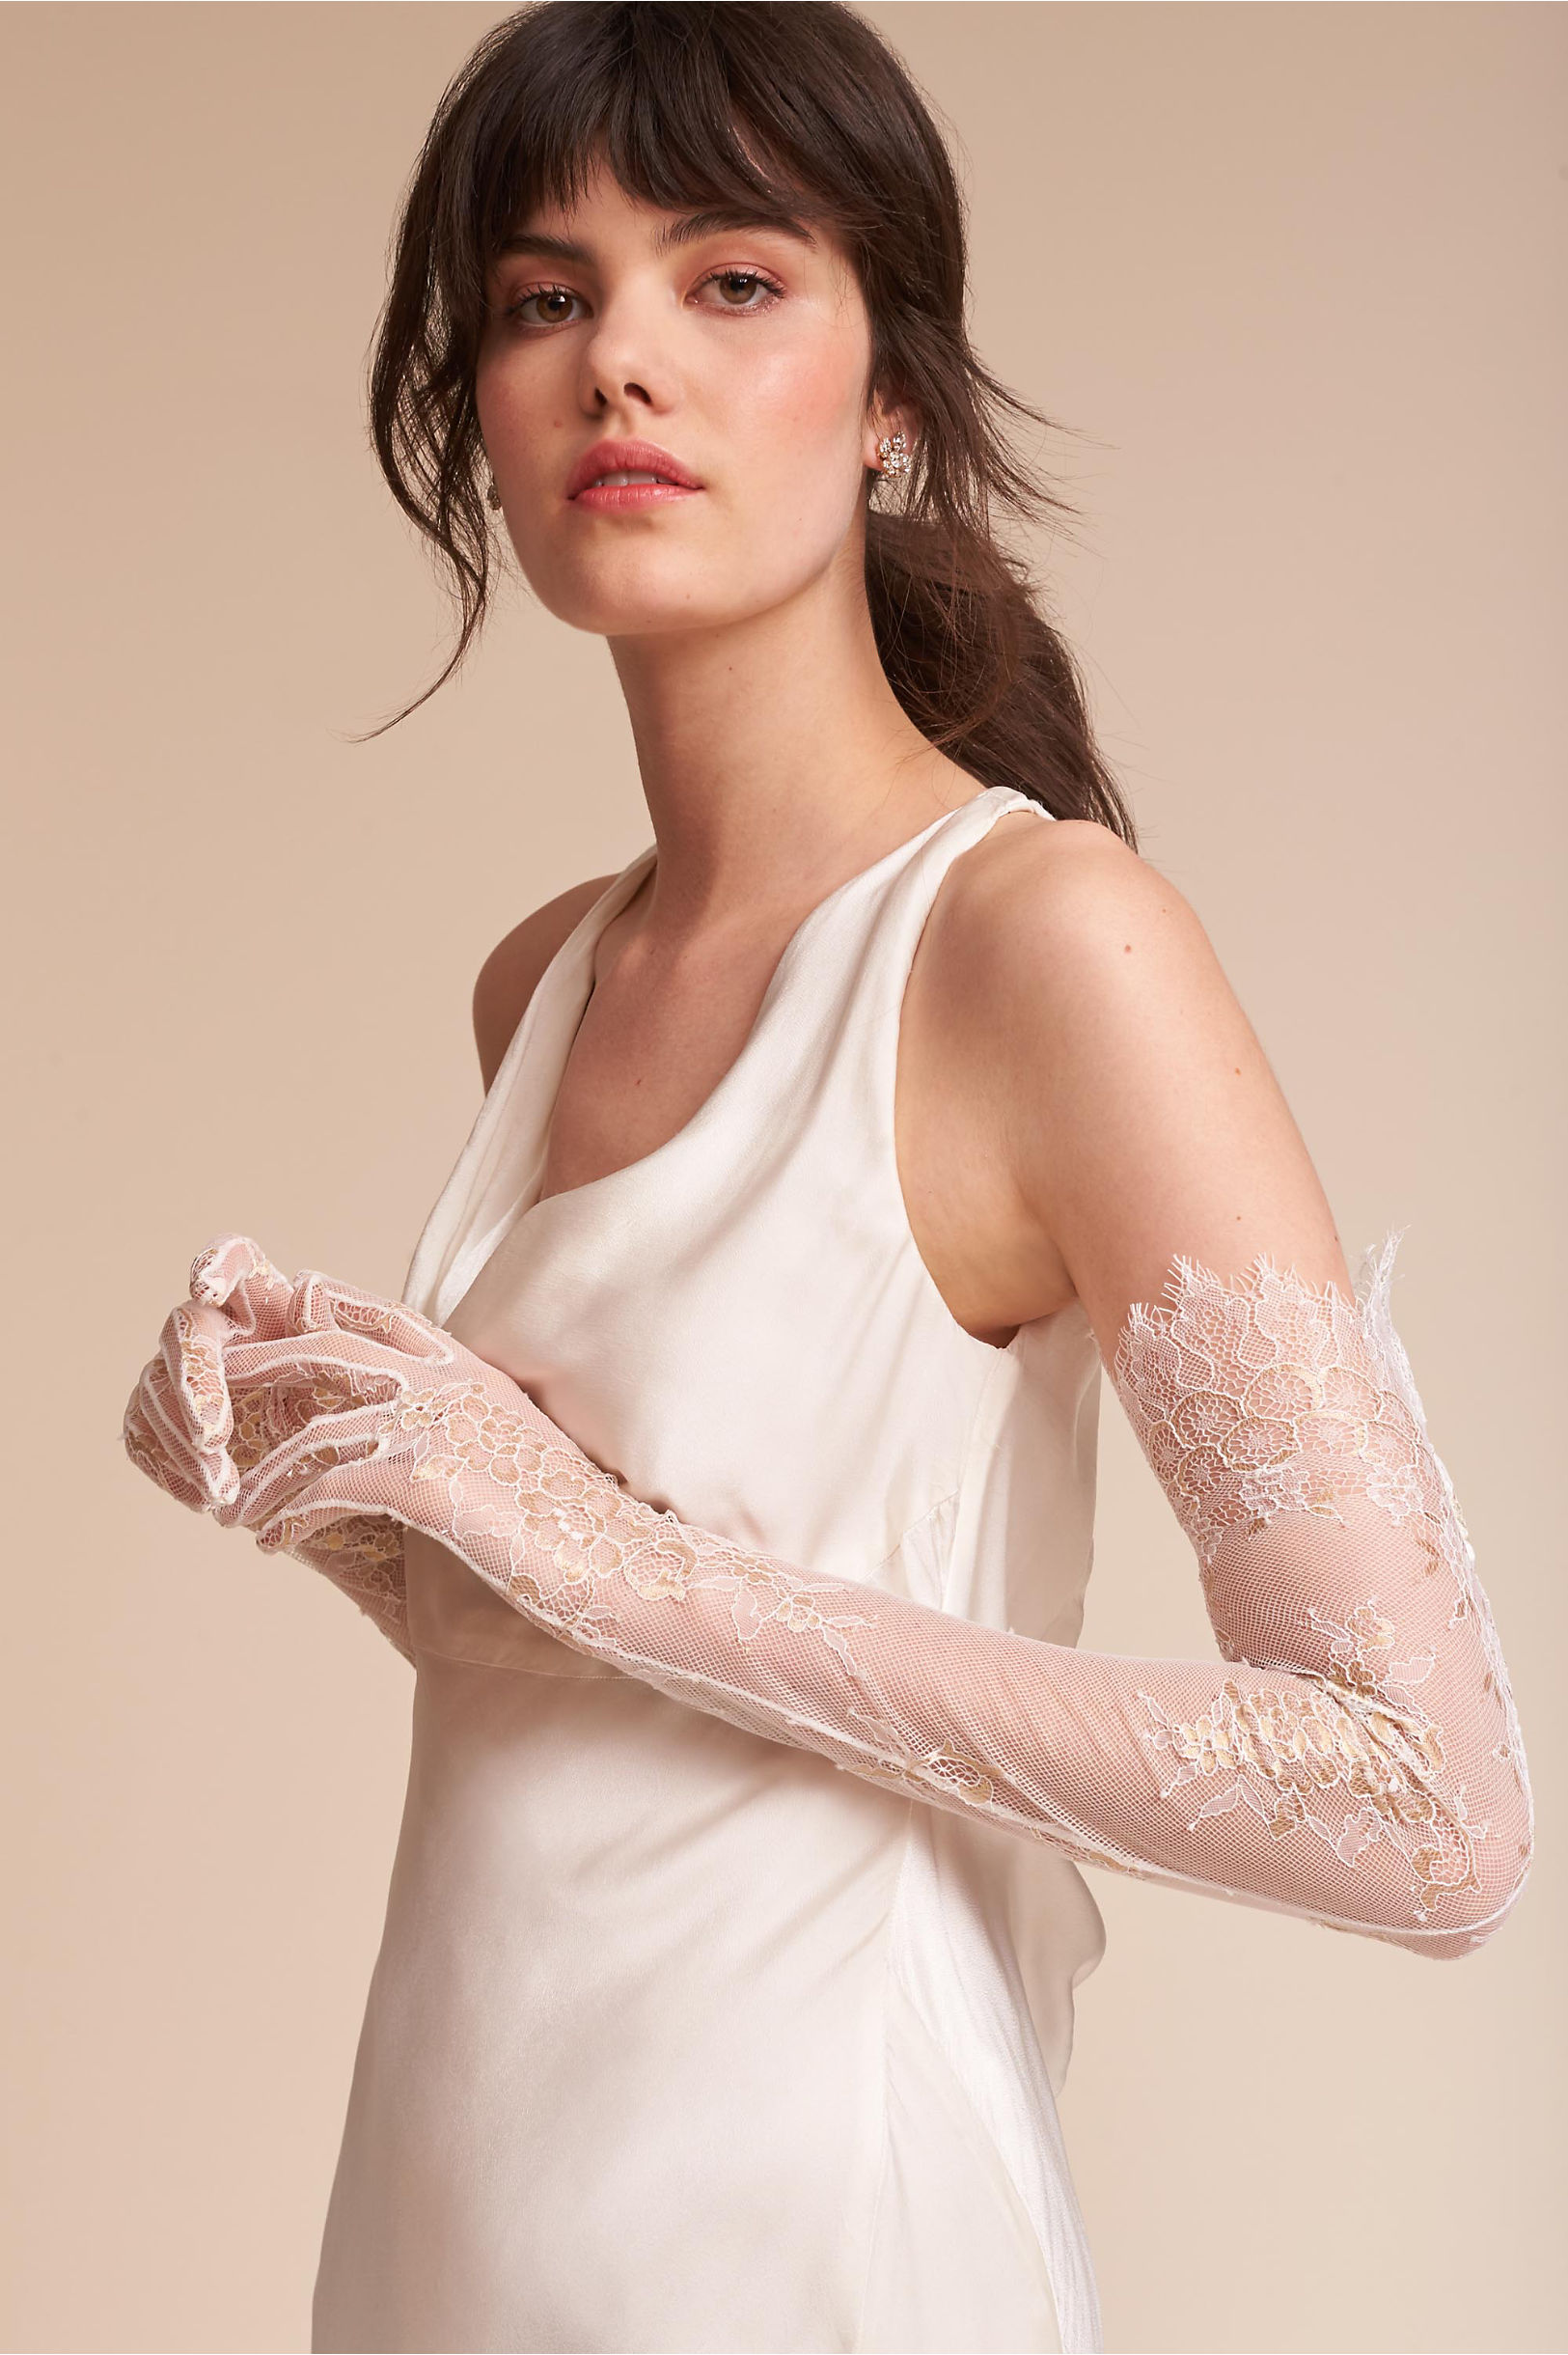 Vintage Inspired Wedding Dress | Vintage Style Wedding Dresses Adalia Lace Gloves $100.00 AT vintagedancer.com